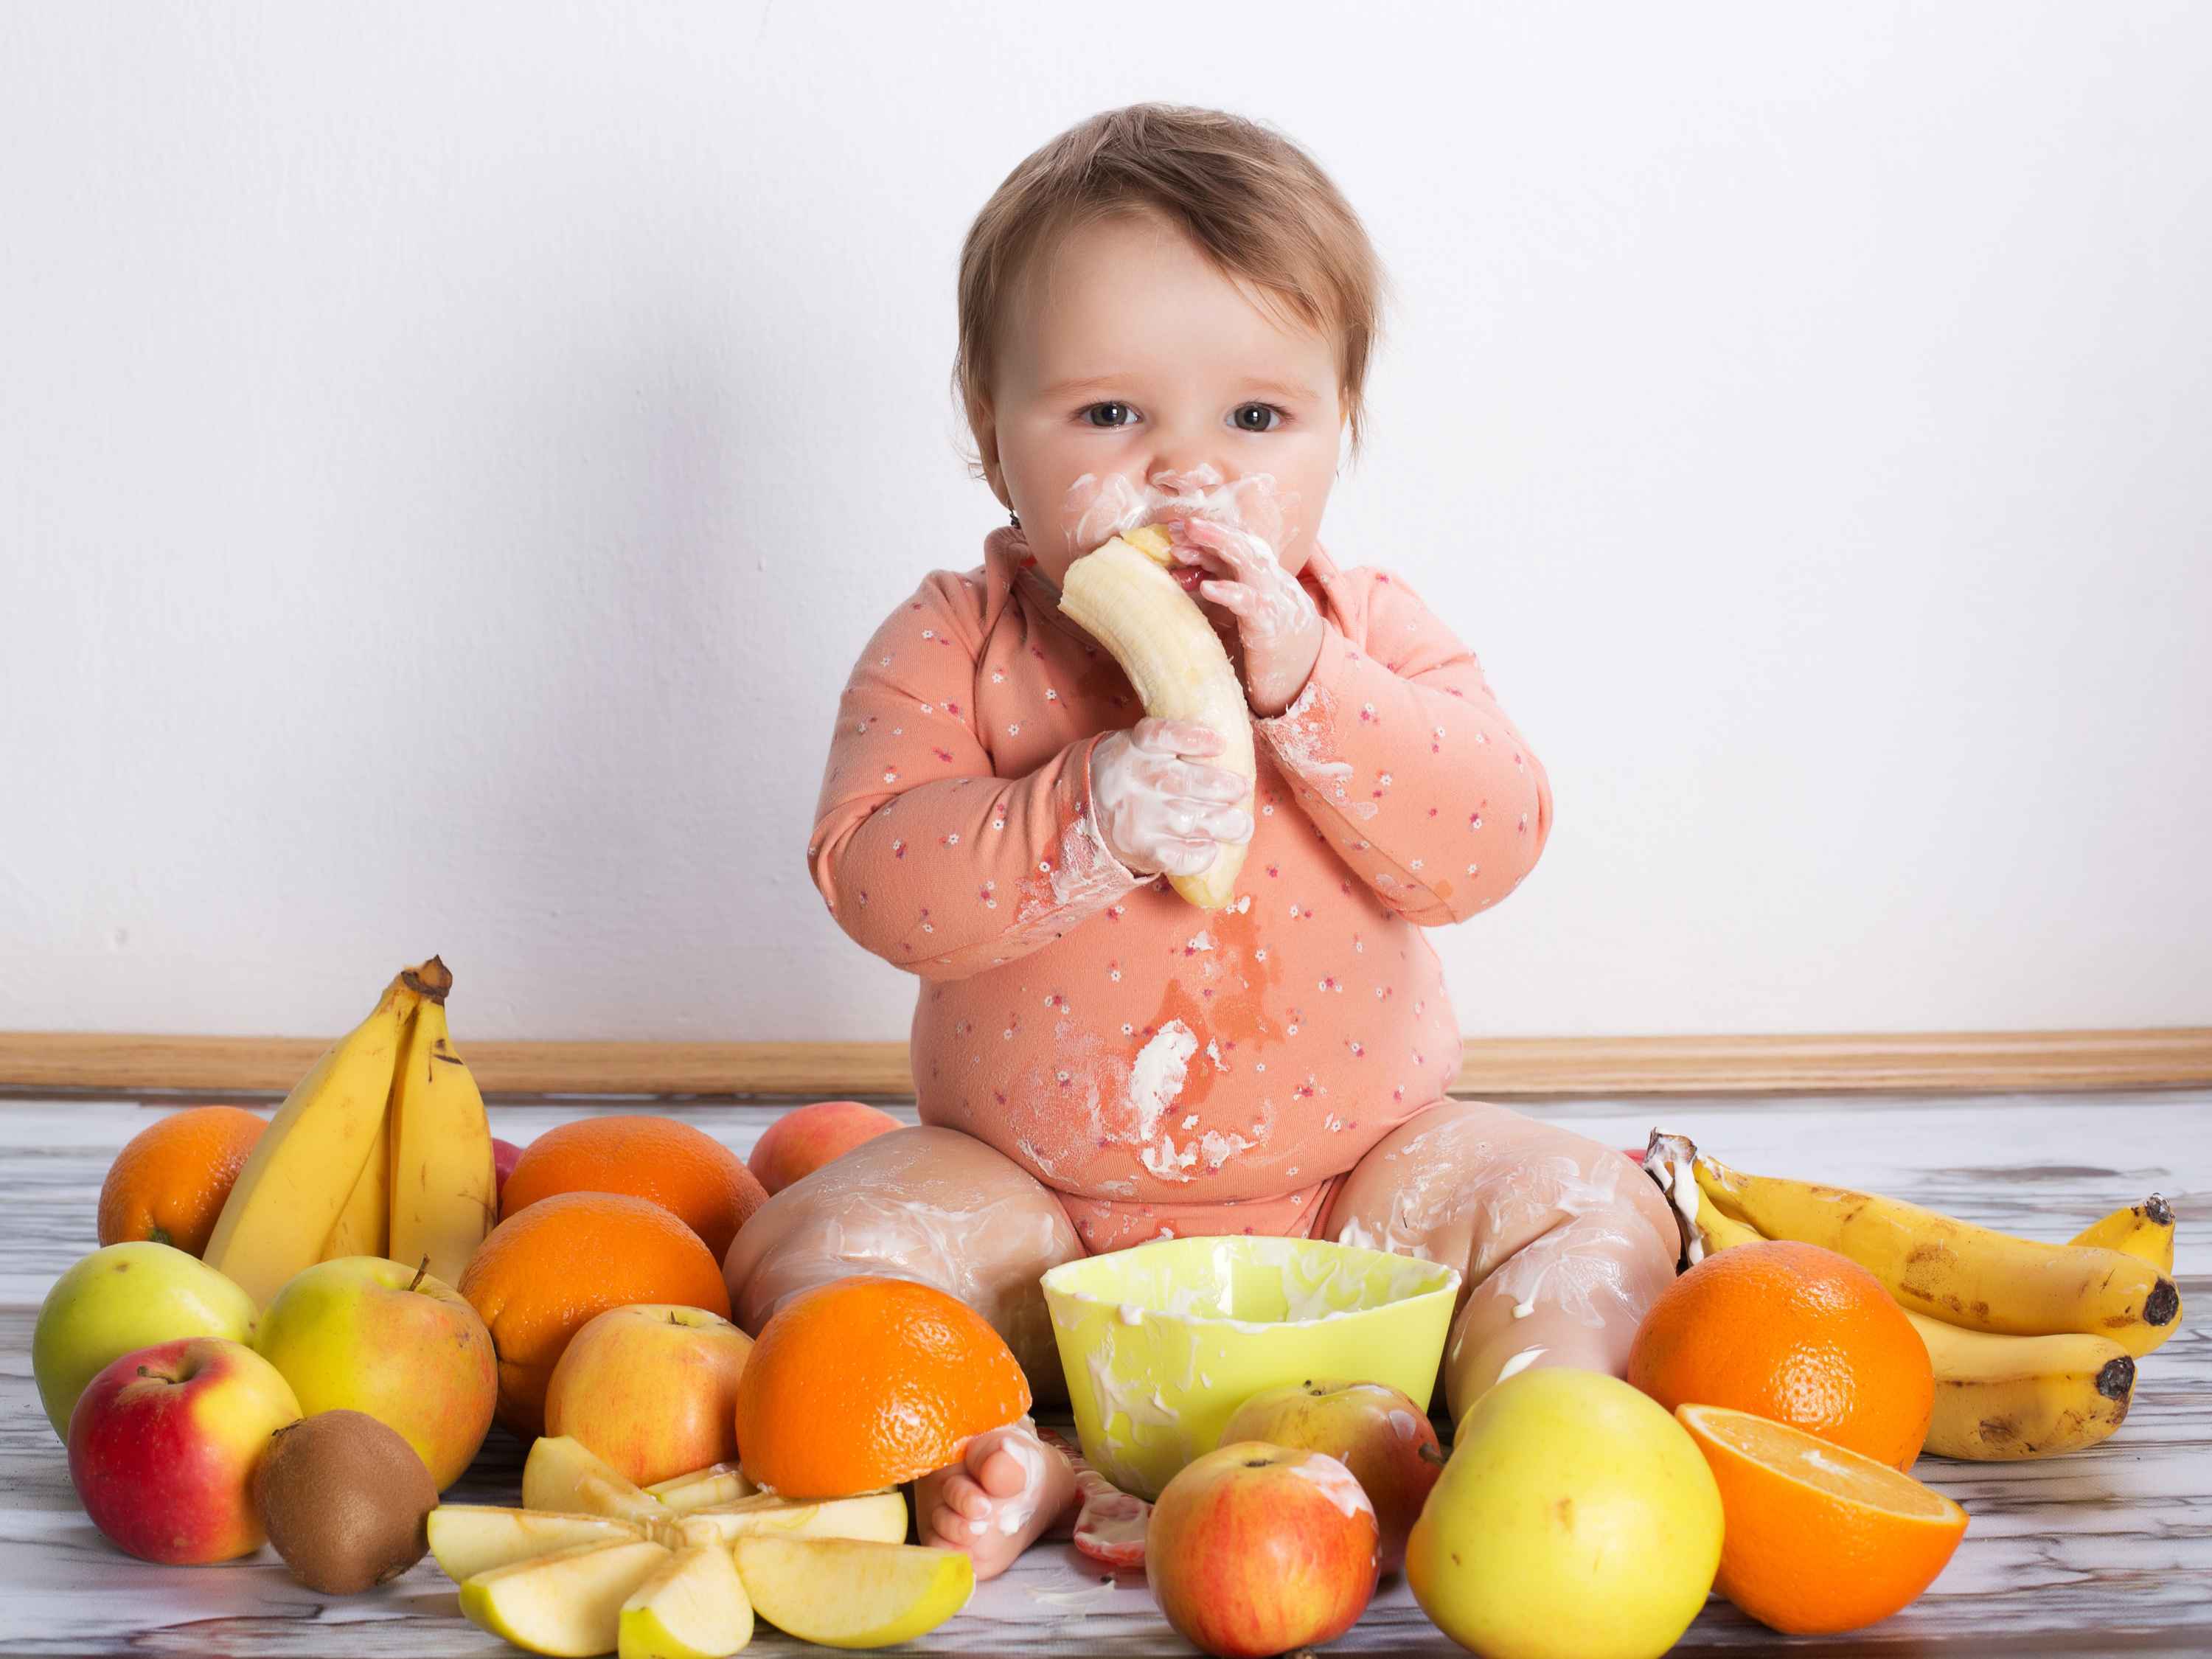 Que Debe Comer Un Bebe De 6 Meses Strategies For Changing Mealtimes From War Zone To